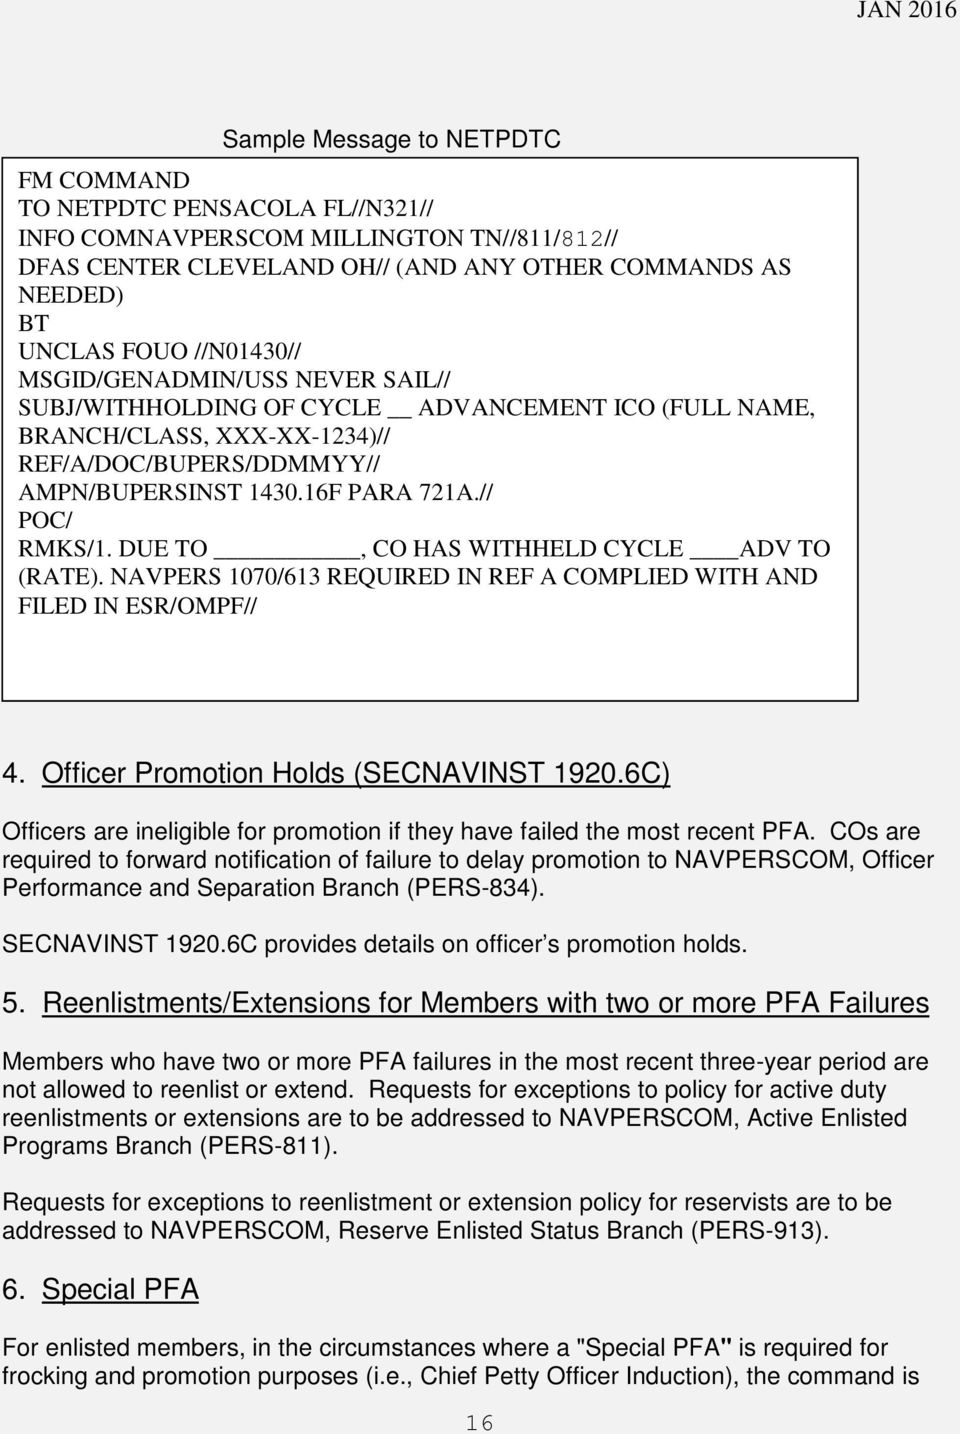 // POC/ RMKS/1. DUE TO, CO HAS WITHHELD CYCLE ADV TO (RATE). NAVPERS 1070/613 REQUIRED IN REF A COMPLIED WITH AND FILED IN ESR/OMPF// 4. Officer Promotion Holds (SECNAVINST 1920.6C) 4.